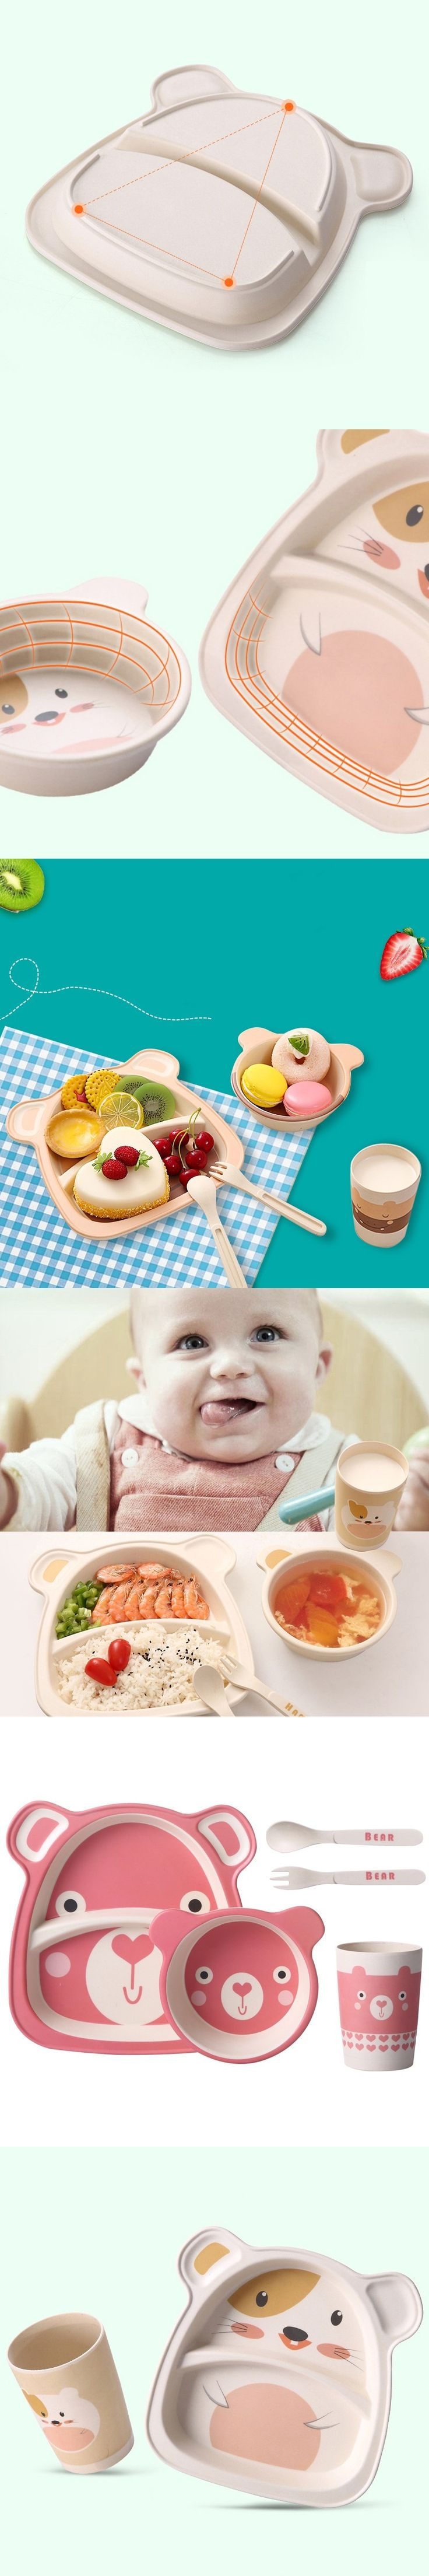 Infant Kids Feeding Dishes Tableware Sets Children Bamboo Fiber Lunch Dinnerware Box With Compartment School Food Container